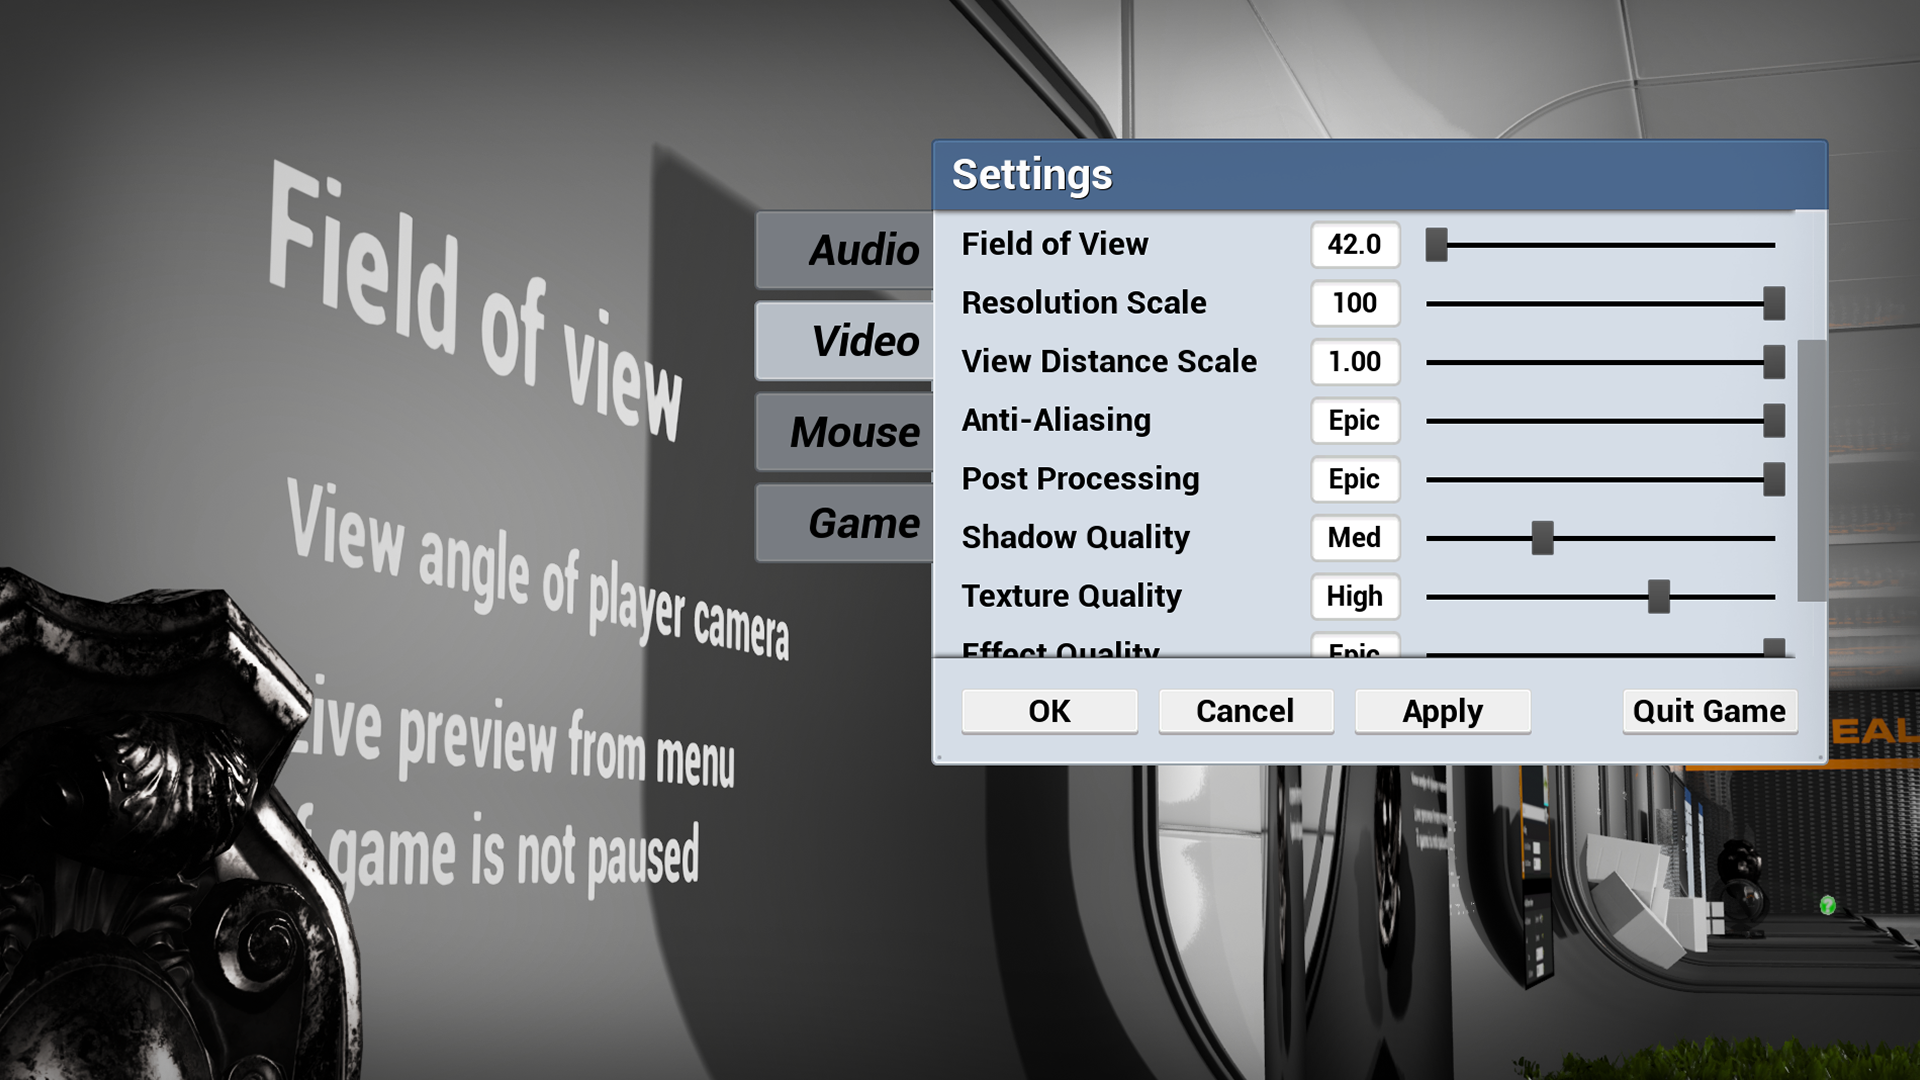 Henrik Goldsack による Quality Game Settings Menu